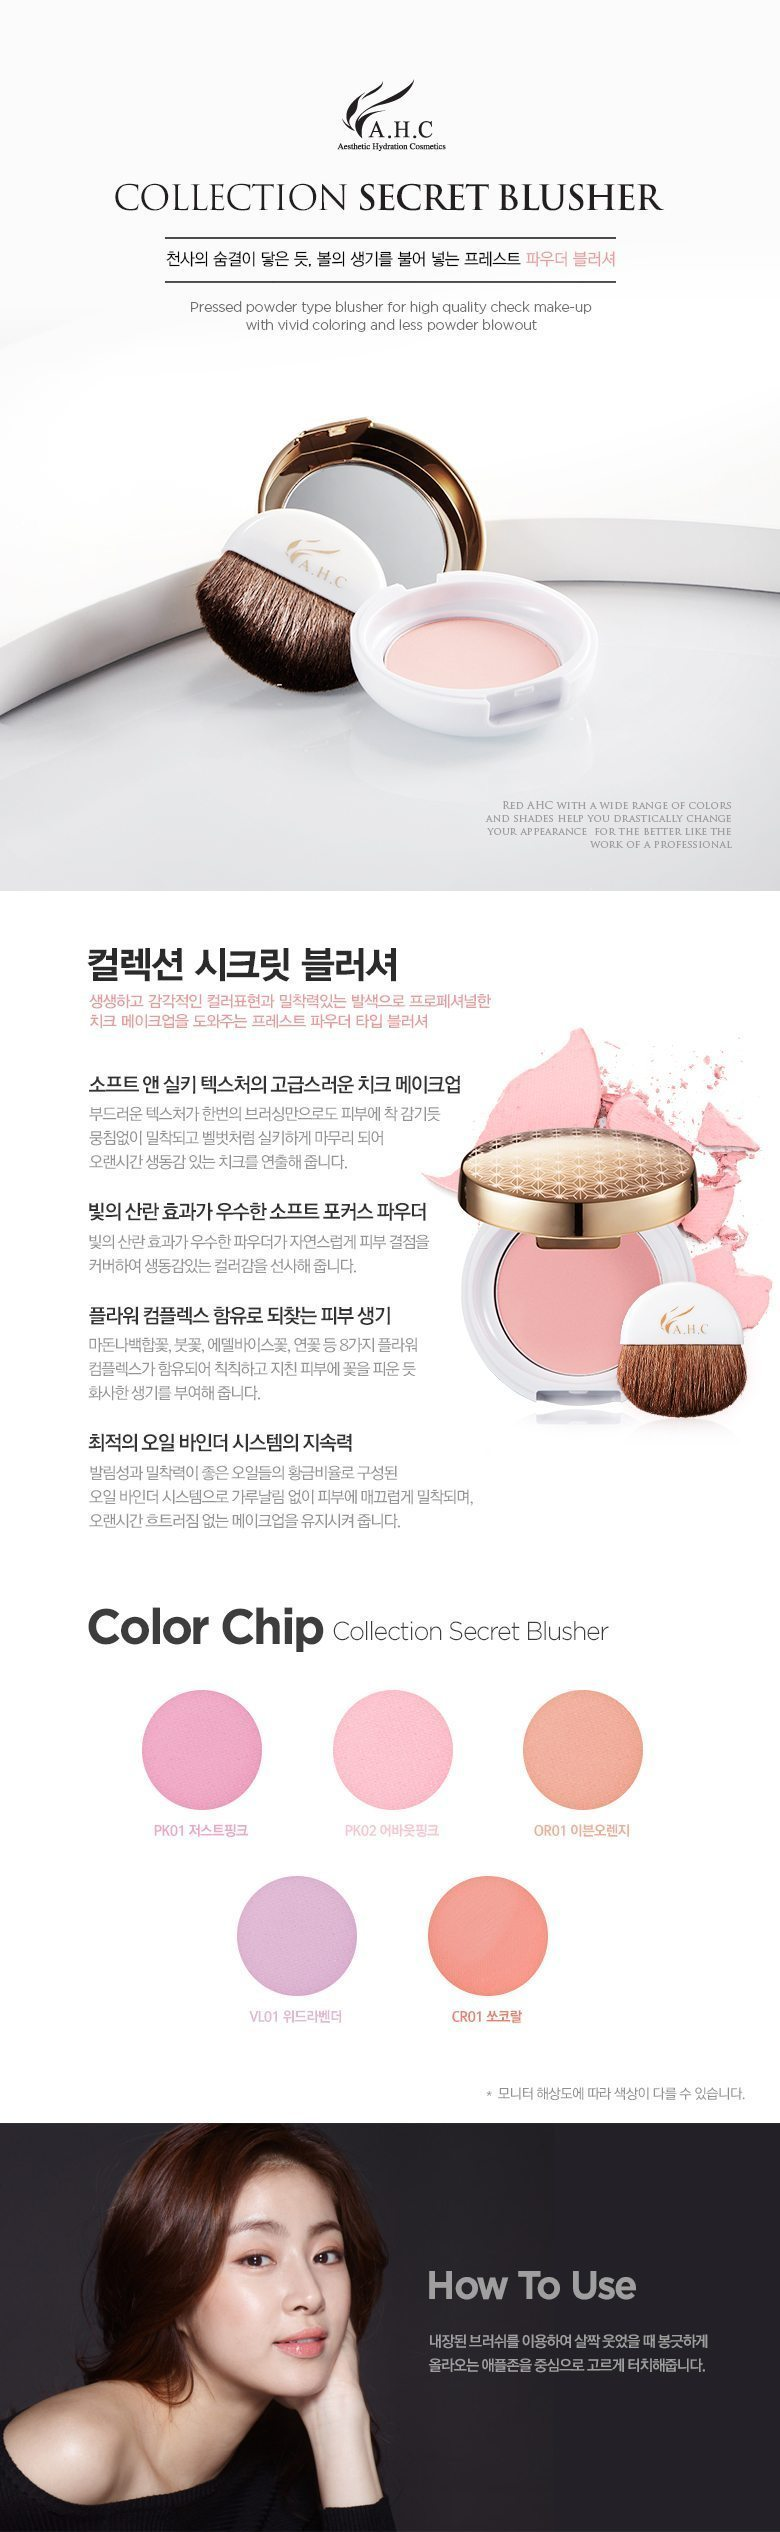 AHC Collection Secret Blusher 15g malaysia singapore indonesia